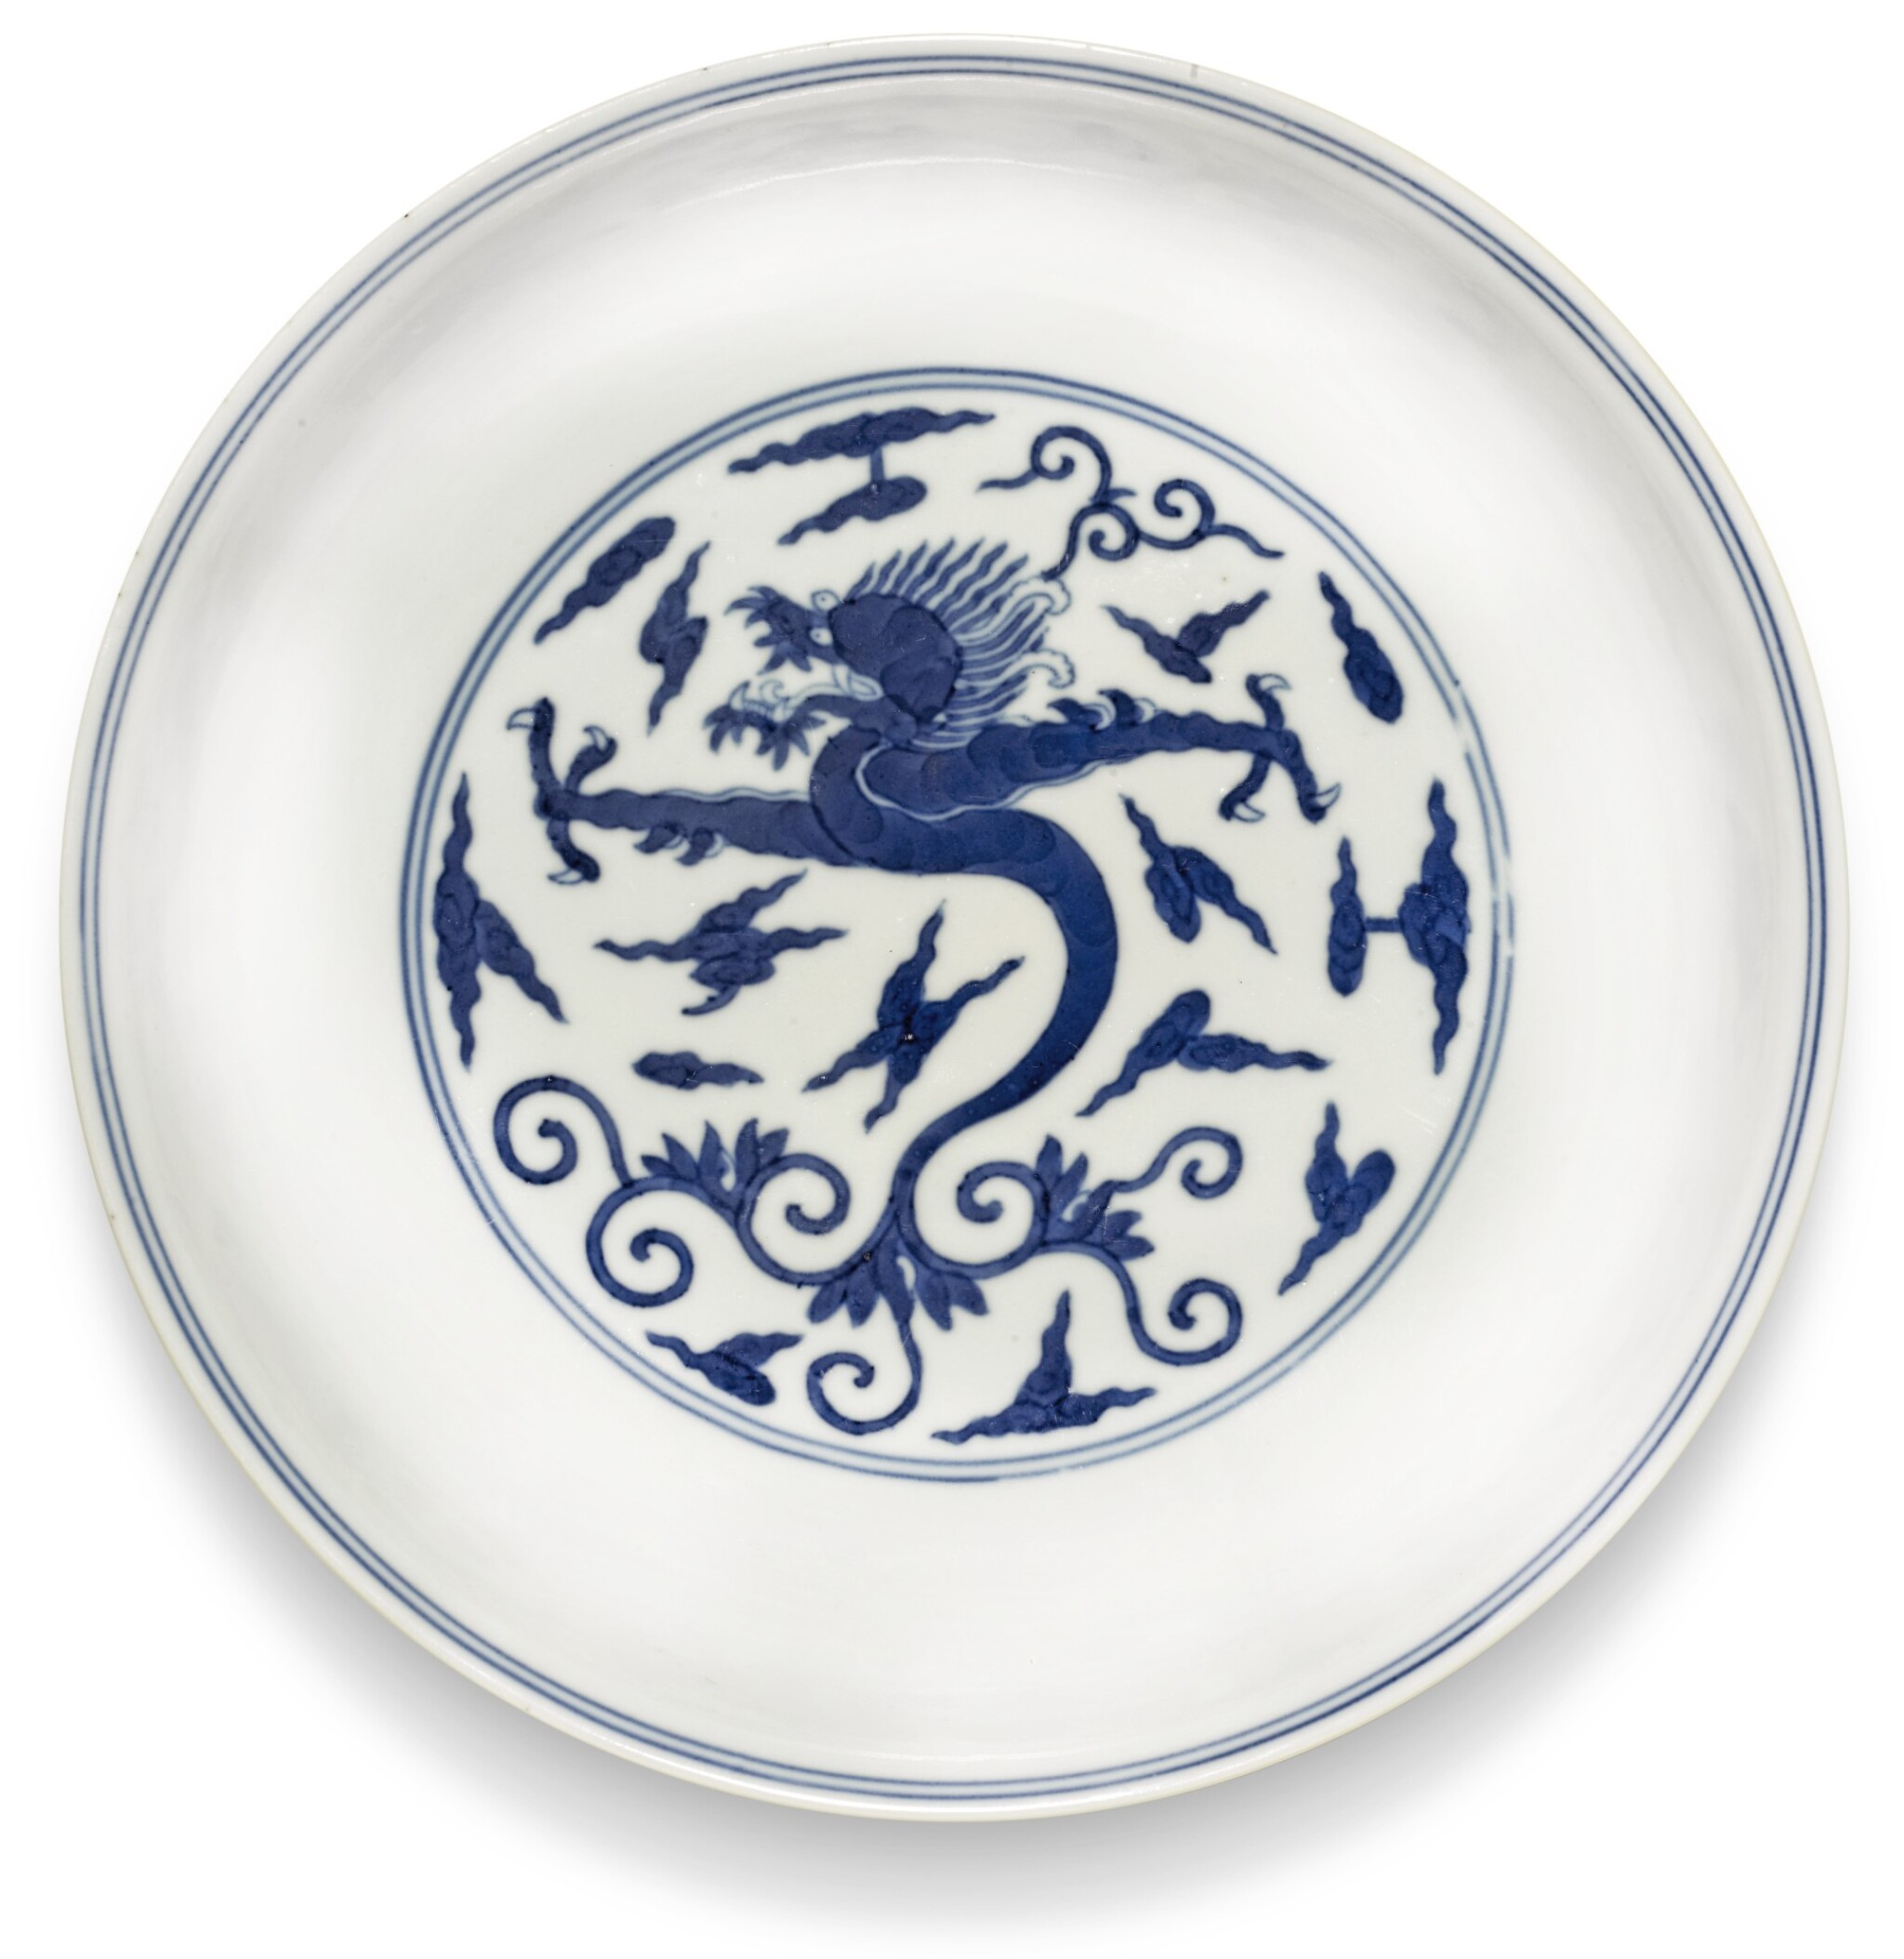 View 1 of Lot 160. A BLUE AND WHITE MING-STYLE 'DRAGON' DISH JIAQING SEAL MARK AND PERIOD | 清嘉慶 青花卷草雲龍紋盤 《大清嘉慶年製》款.